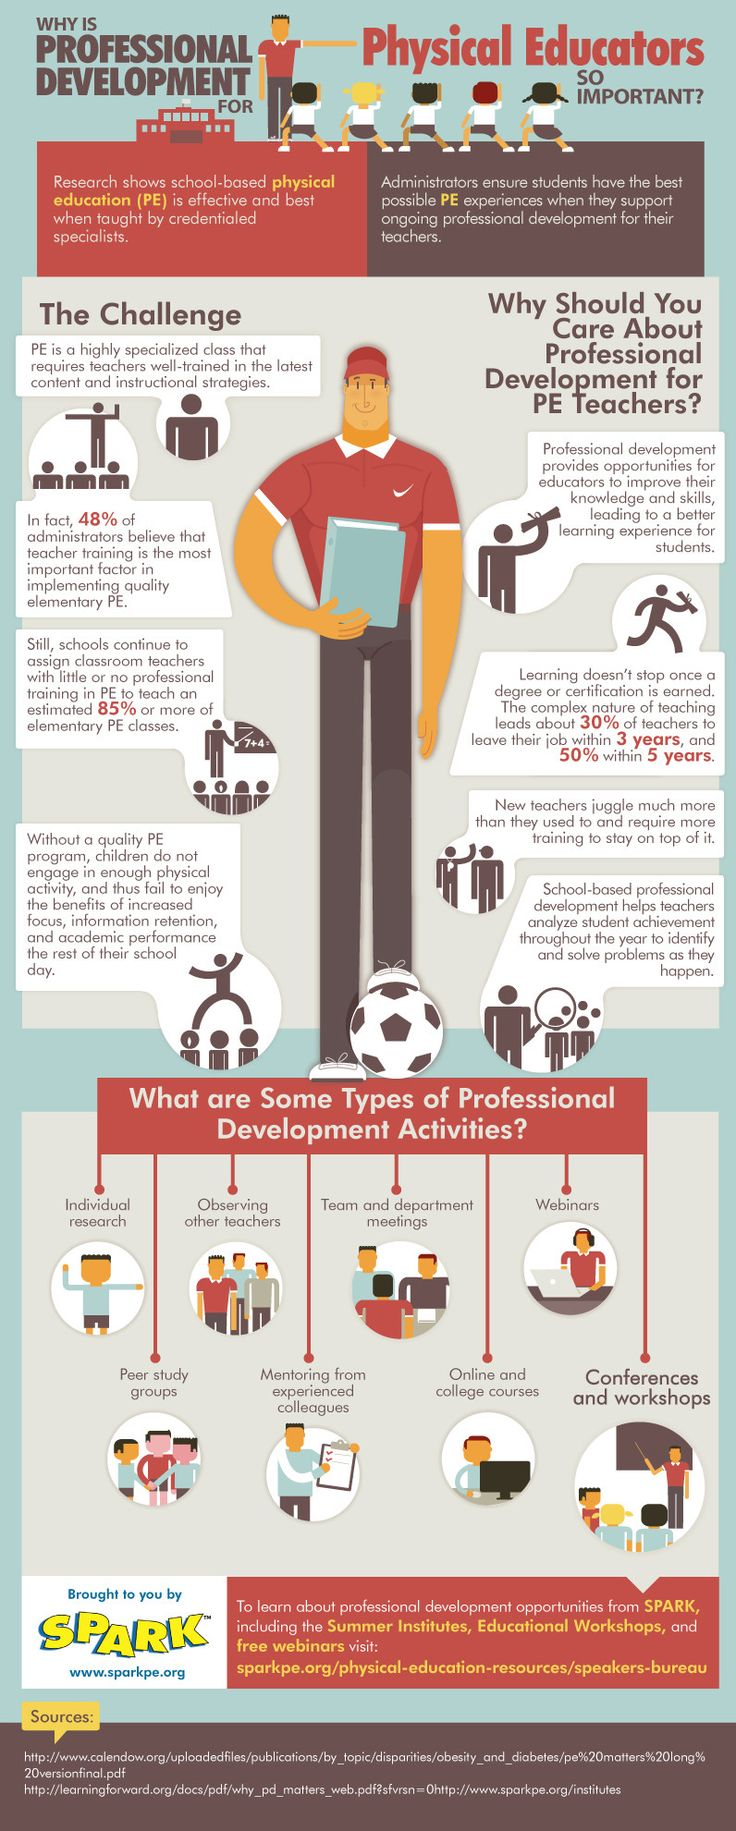 Why is Professional Development For Physical Educators So Important? #infographic